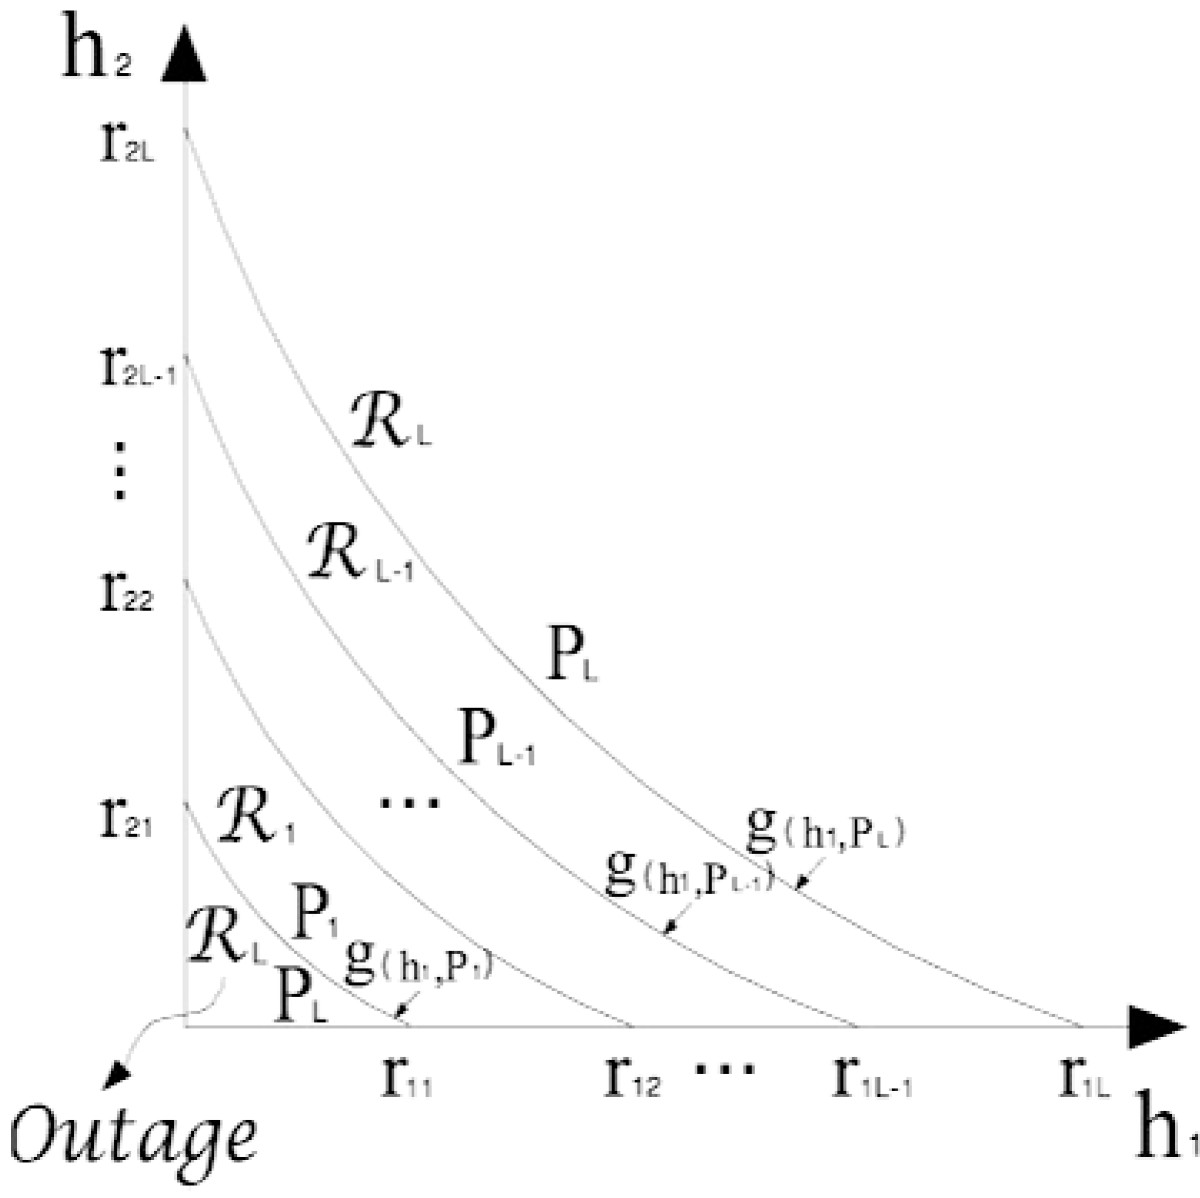 http://static-content.springer.com/image/art%3A10.1186%2F1687-1499-2012-352/MediaObjects/13638_2011_Article_604_Fig2_HTML.jpg